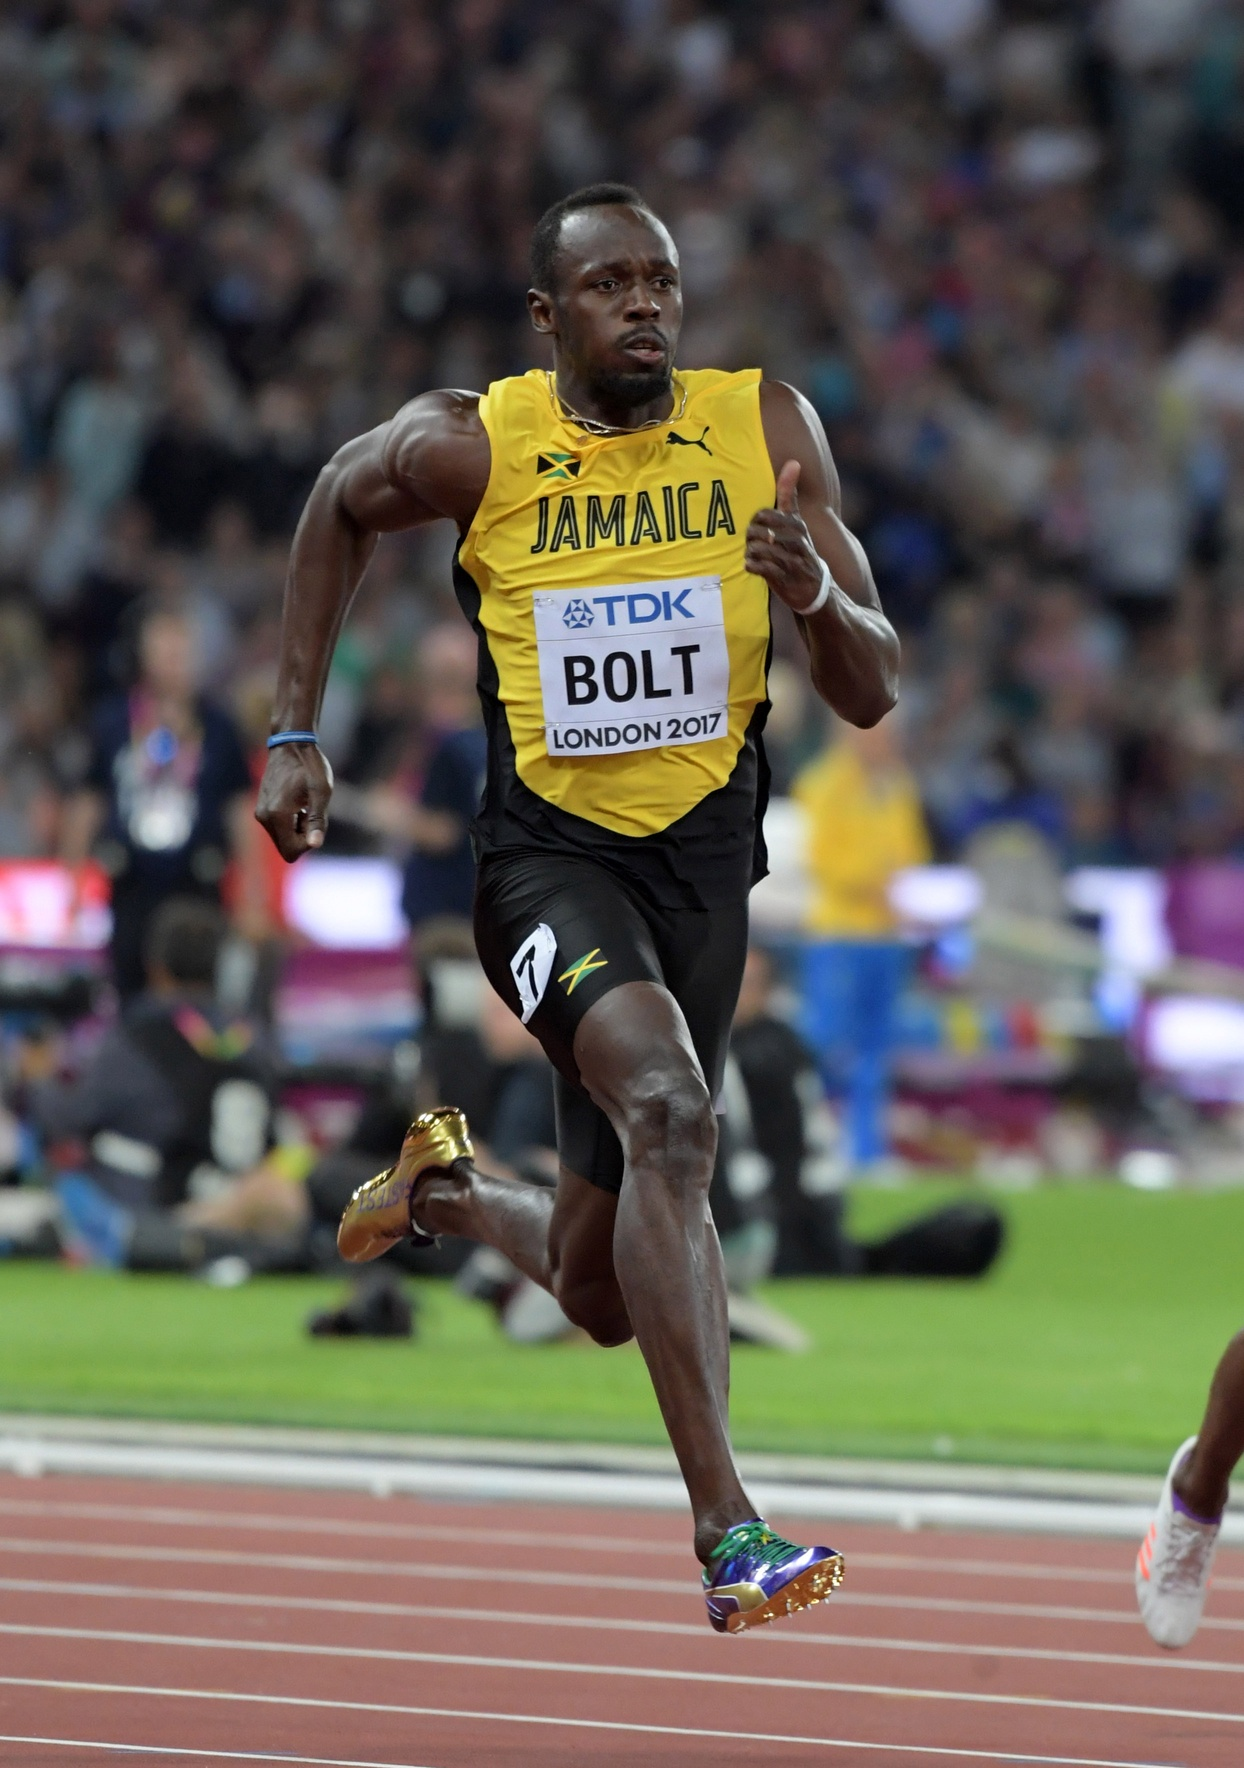 Usain Bolt Like Phelps A Legend with an Imperfect Ending